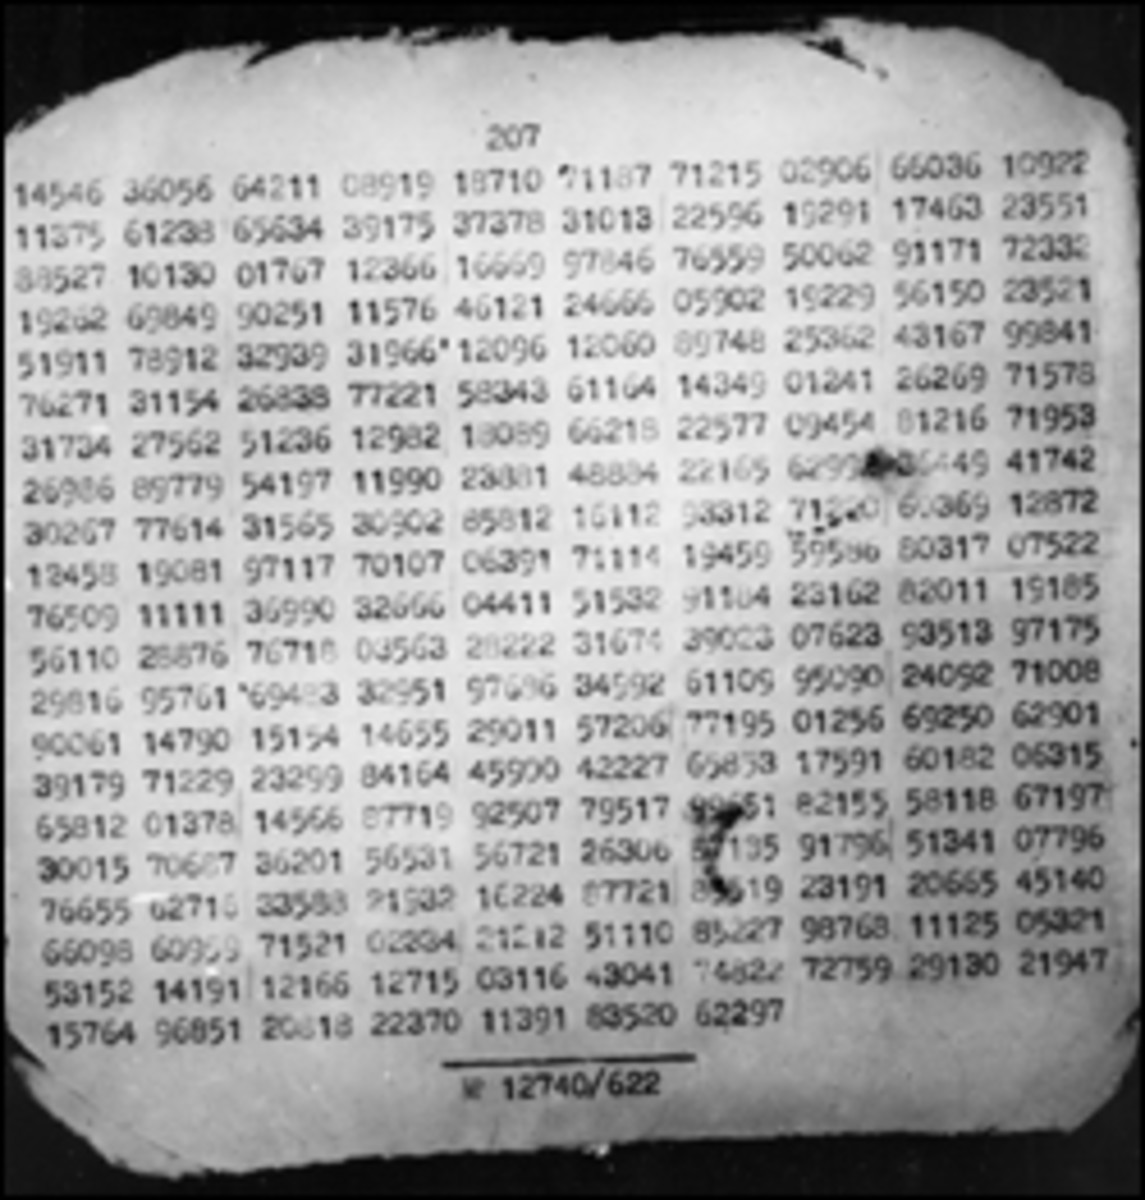 The code that baffled the experts.